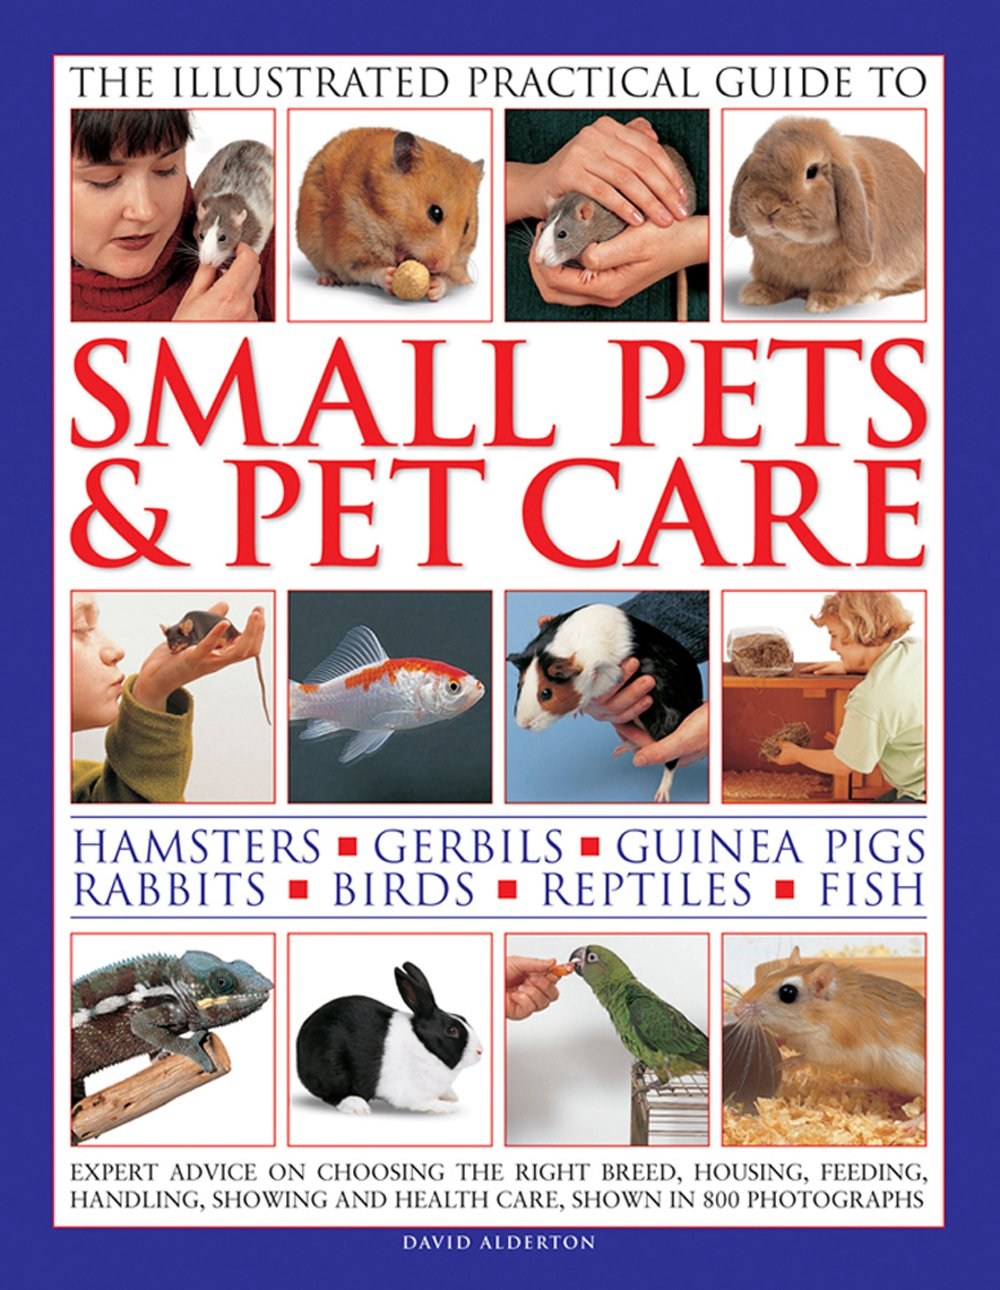 The Illustrated Practical Guide to Small Pets & Pet Care: Hamsters, Gerbils, Guinea Pigs, Rabbits, Birds, Reptiles, Fish